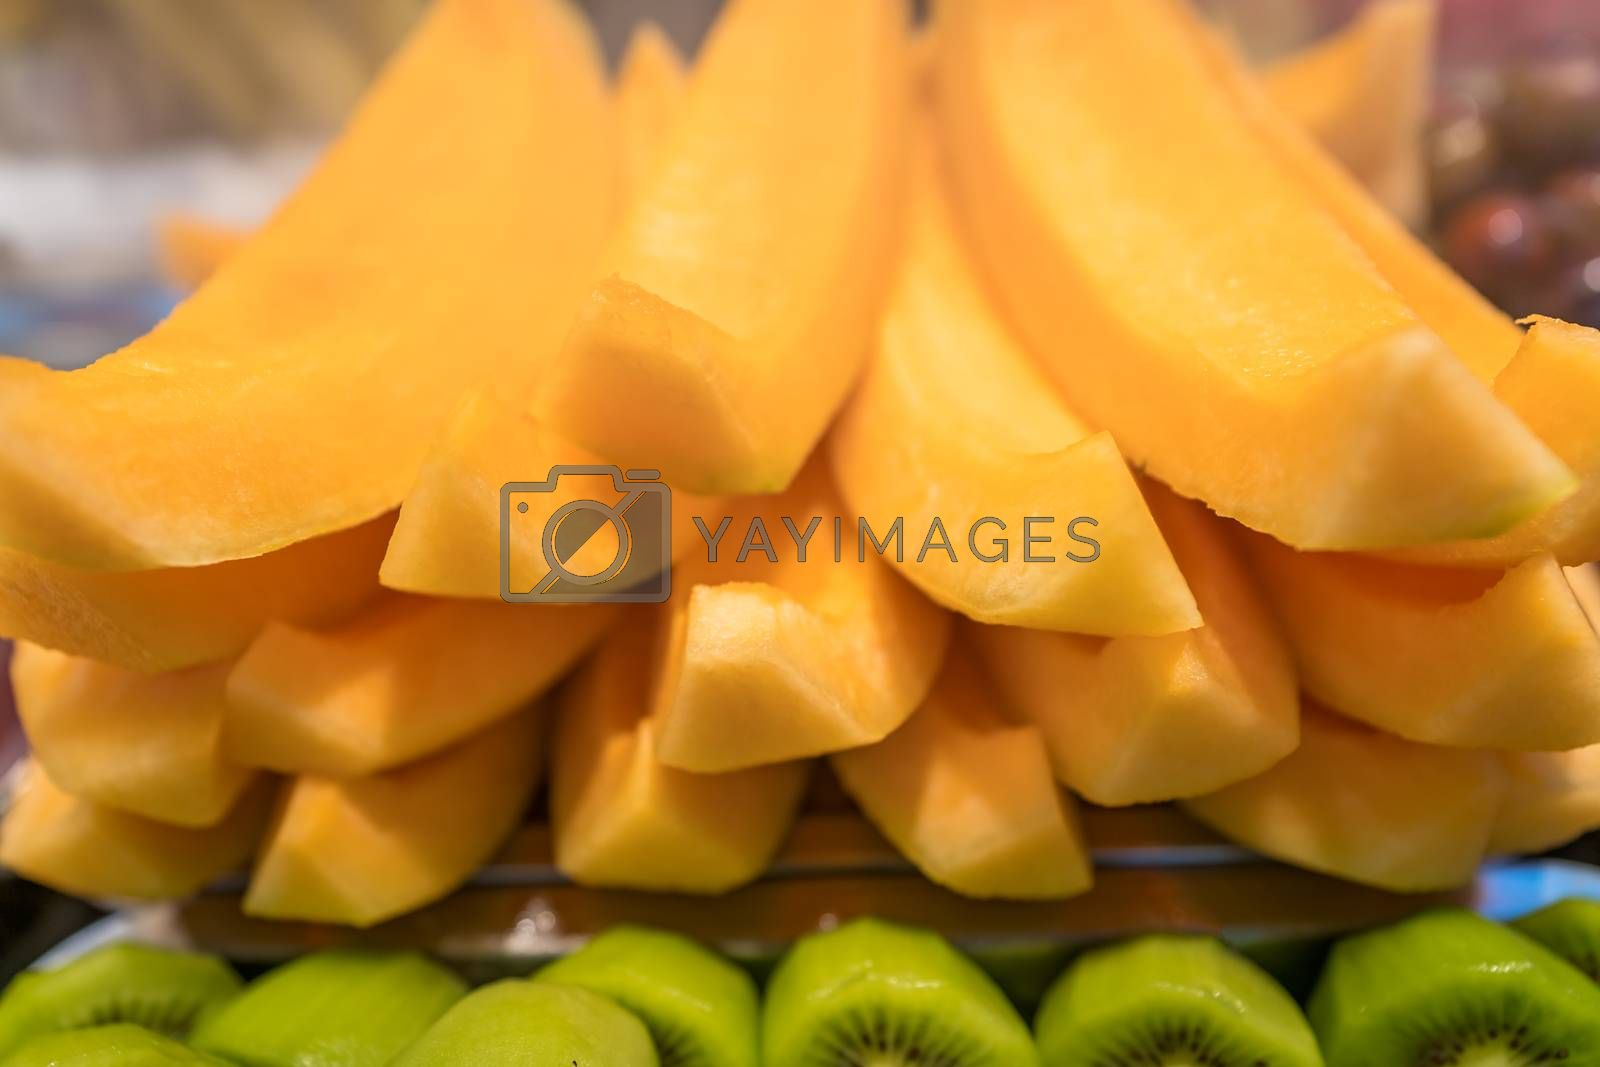 Pile of freshly cut delicious juicy kiwis and melons for sale on market in China